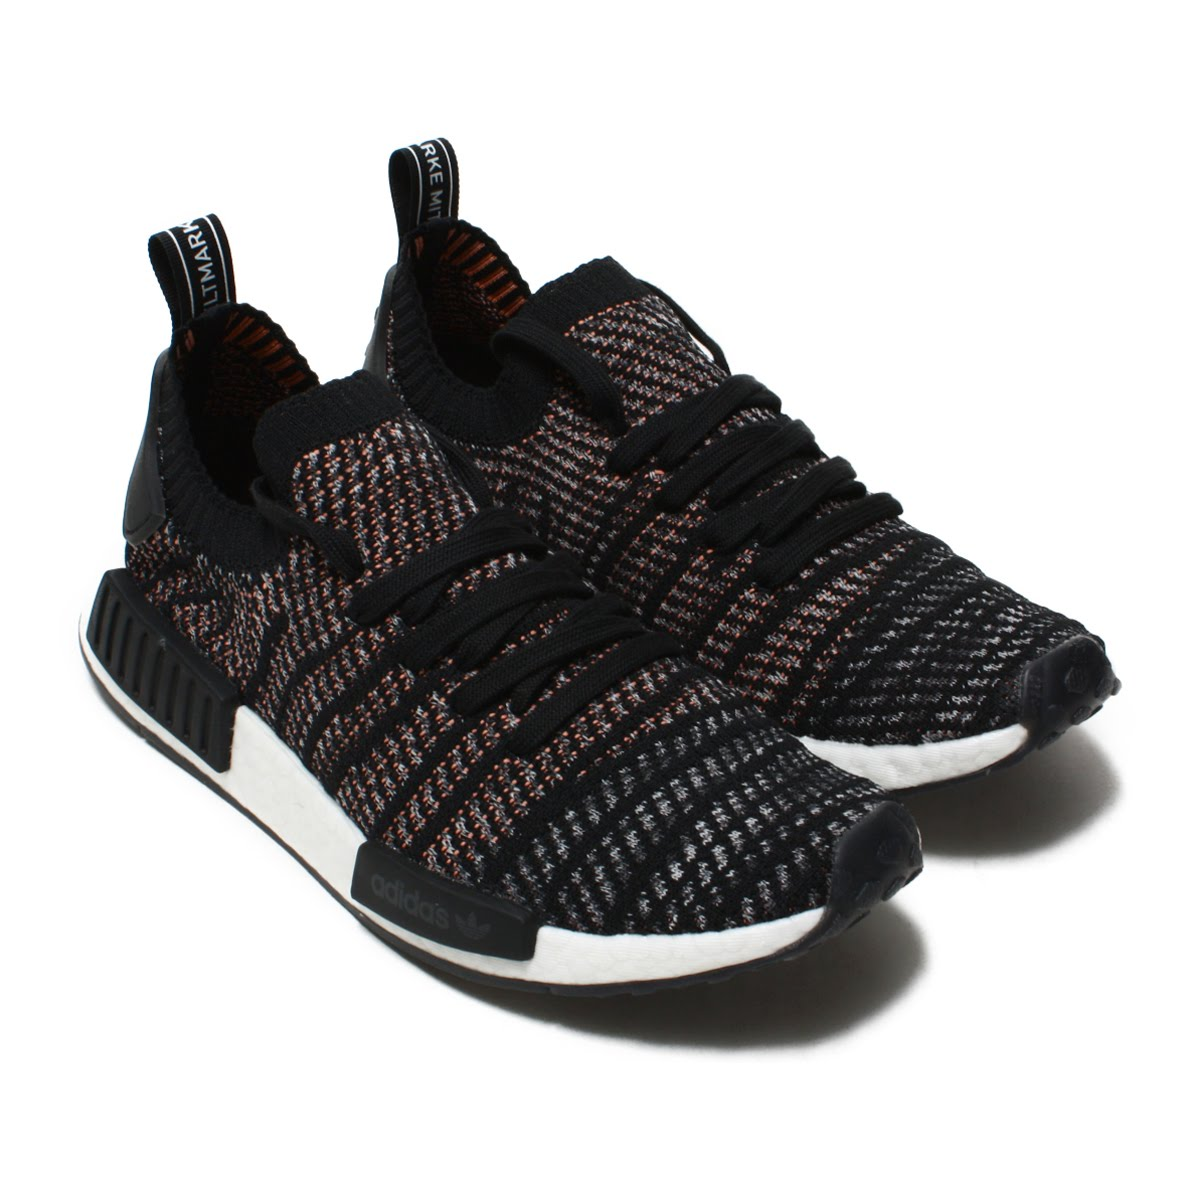 best website c608a ac16a adidas Originals NMD R1 STLT PK (Adidas originals N M D R1STLT PK W) Core  Black/Grey/Grey 18FW-I